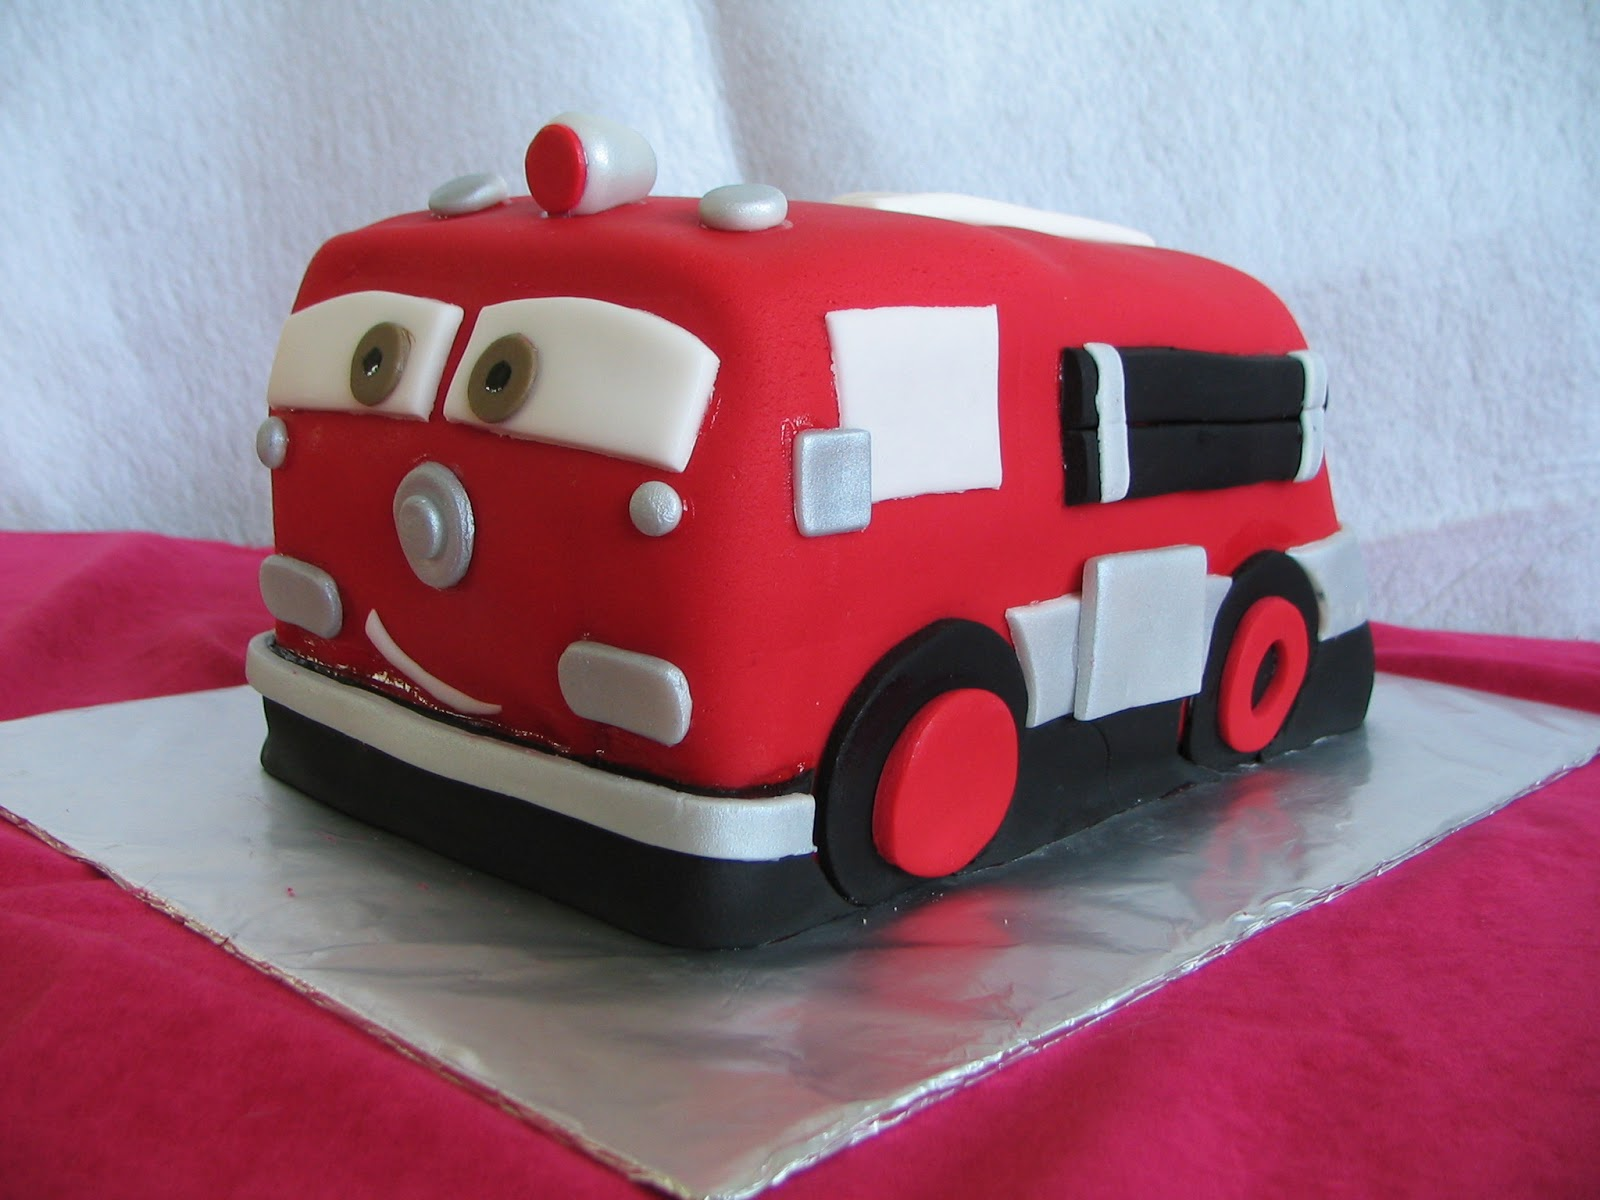 Piped Dreams Red Fire Truck From Cars Birthday Cake